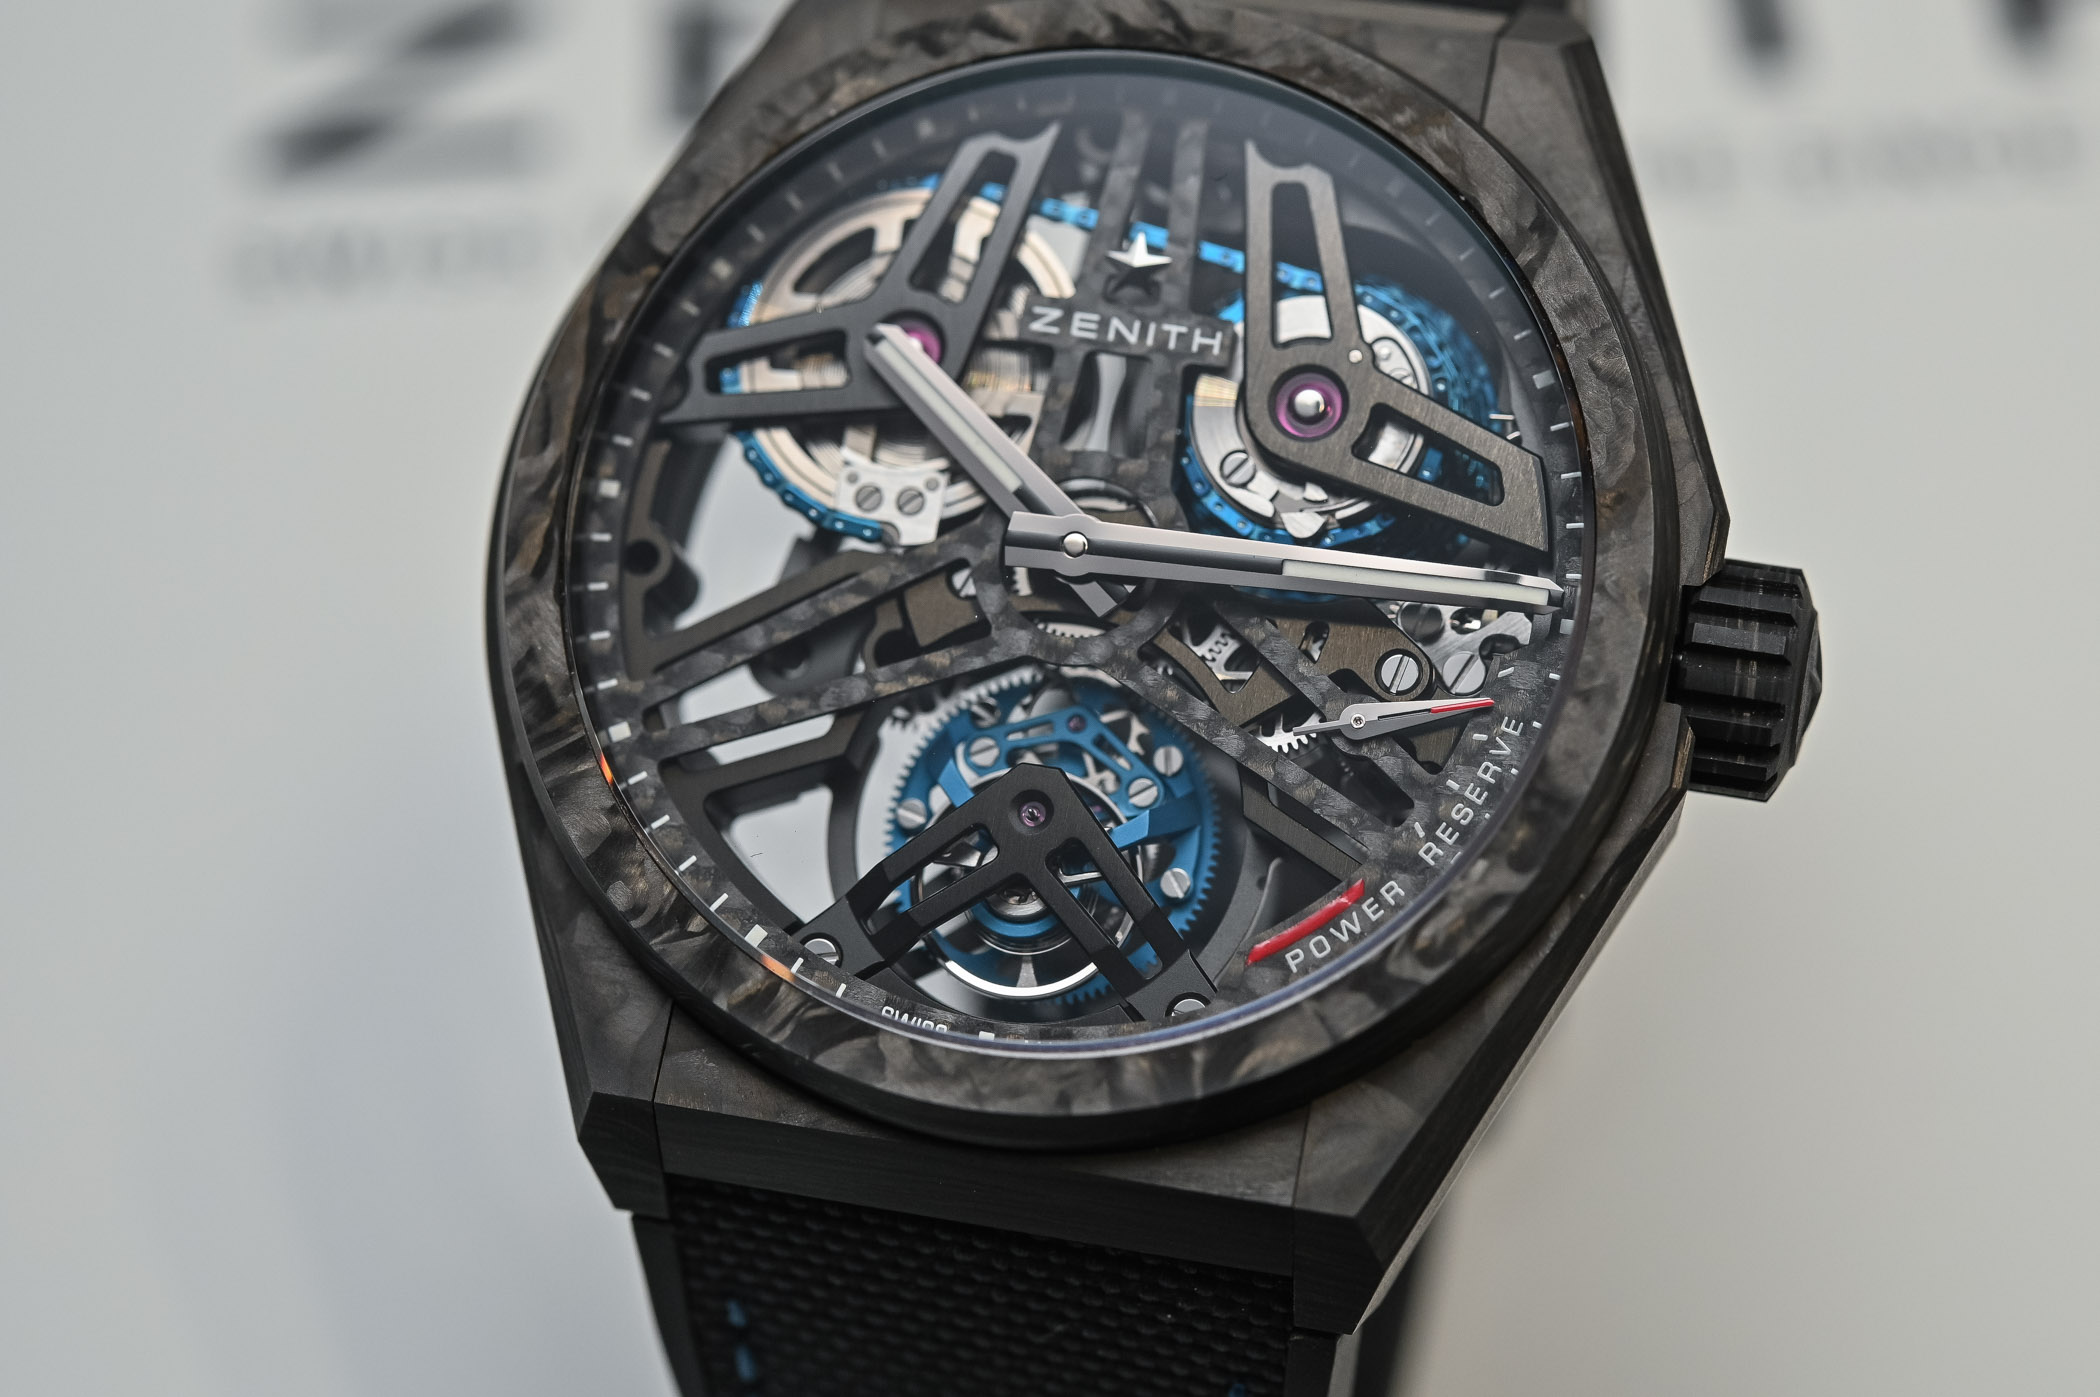 Zenith Defy Fusee Tourbillon fusee and chain